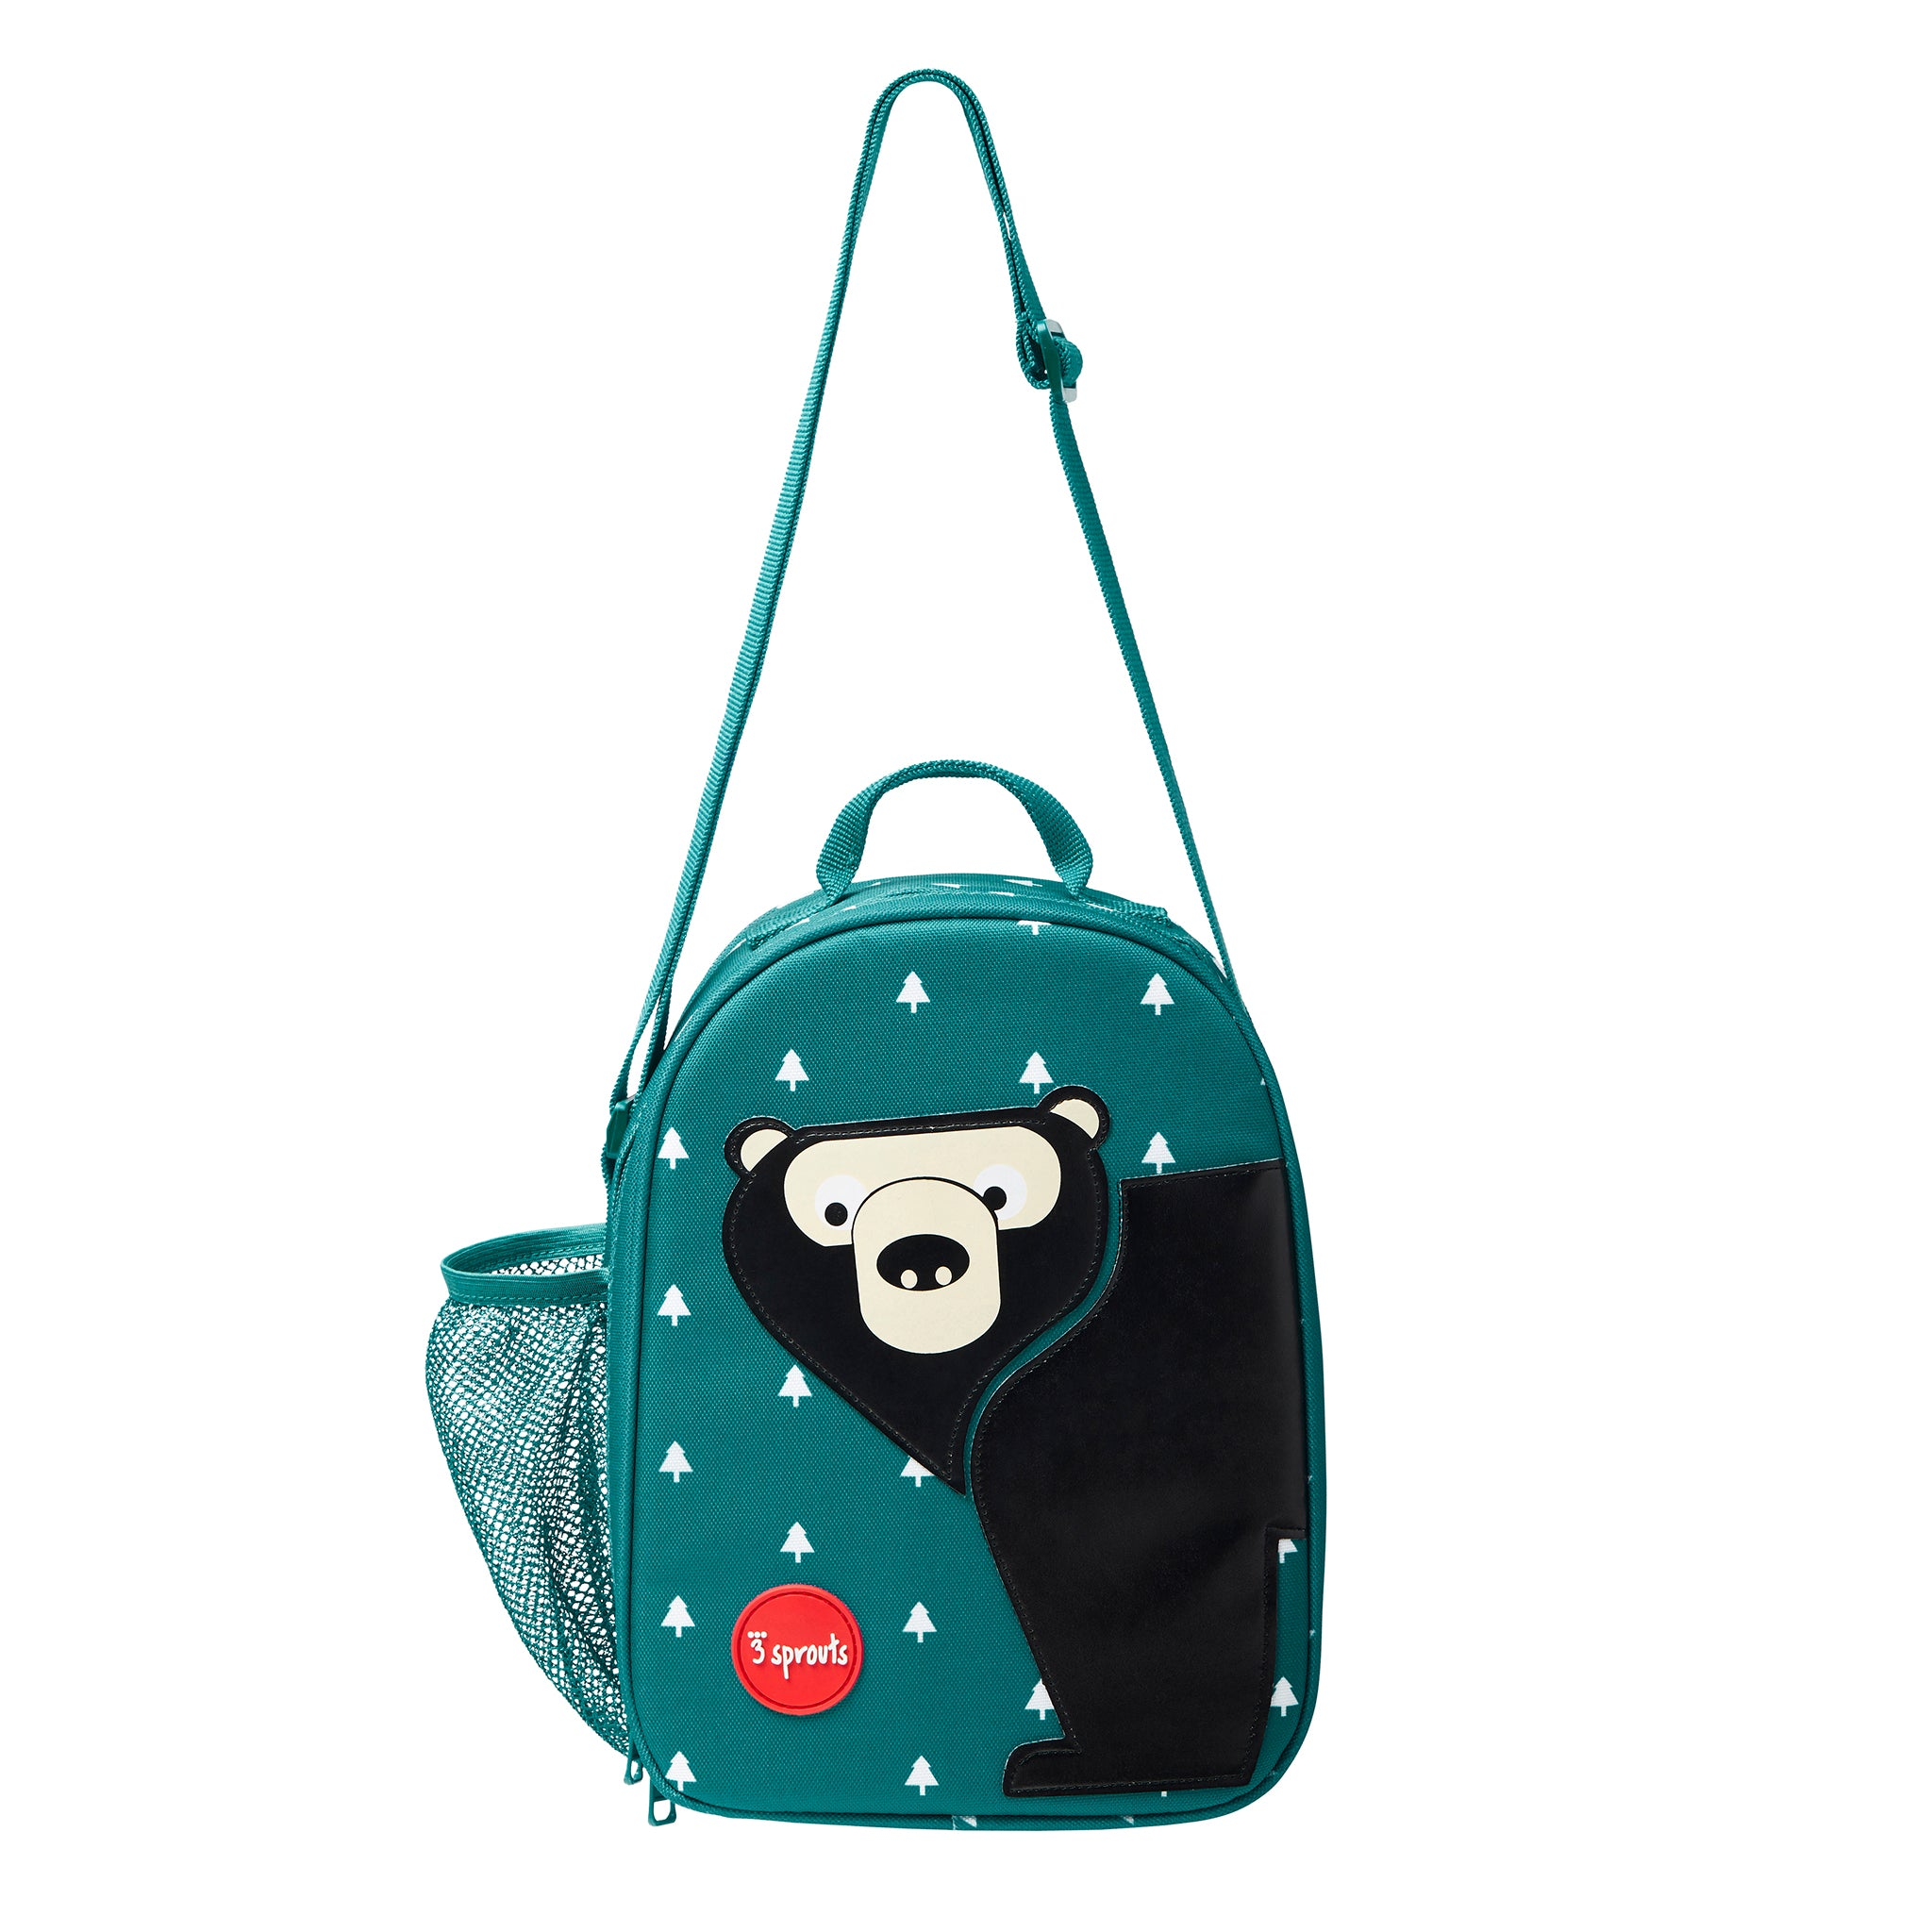 Bear Lunch Bag 3sprouts Ca